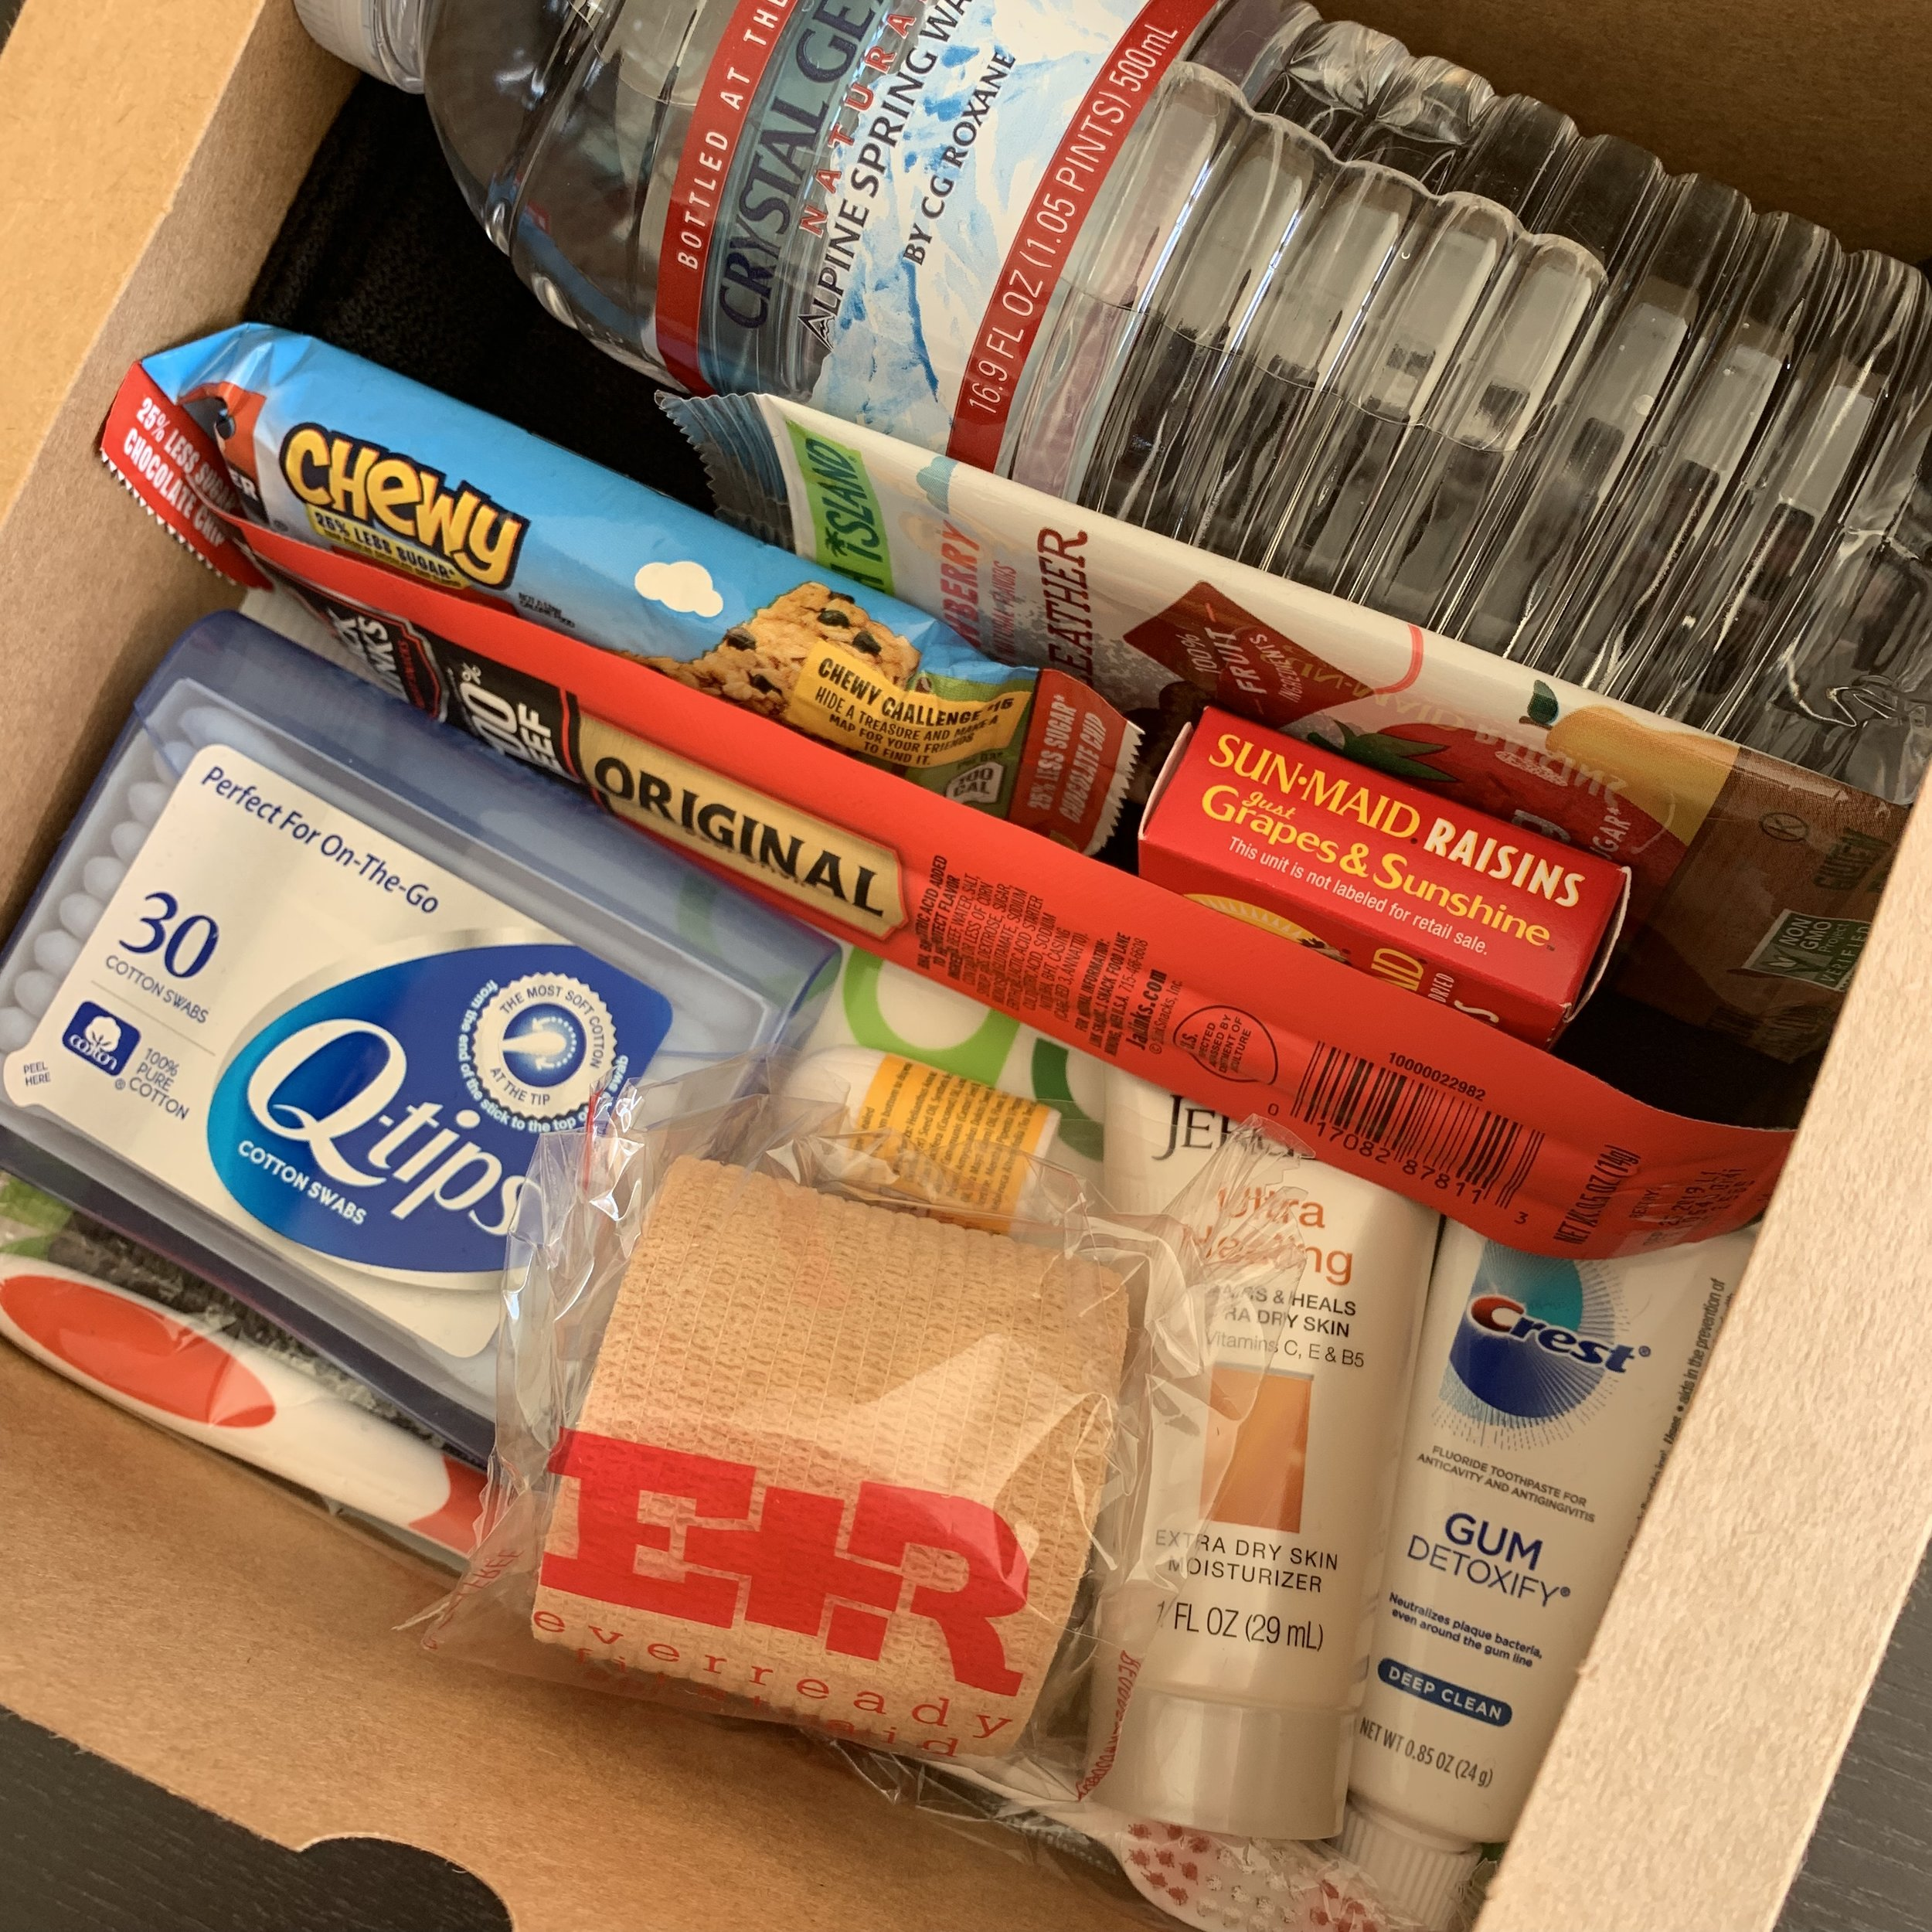 Box-of-Kindness-Contents.jpg